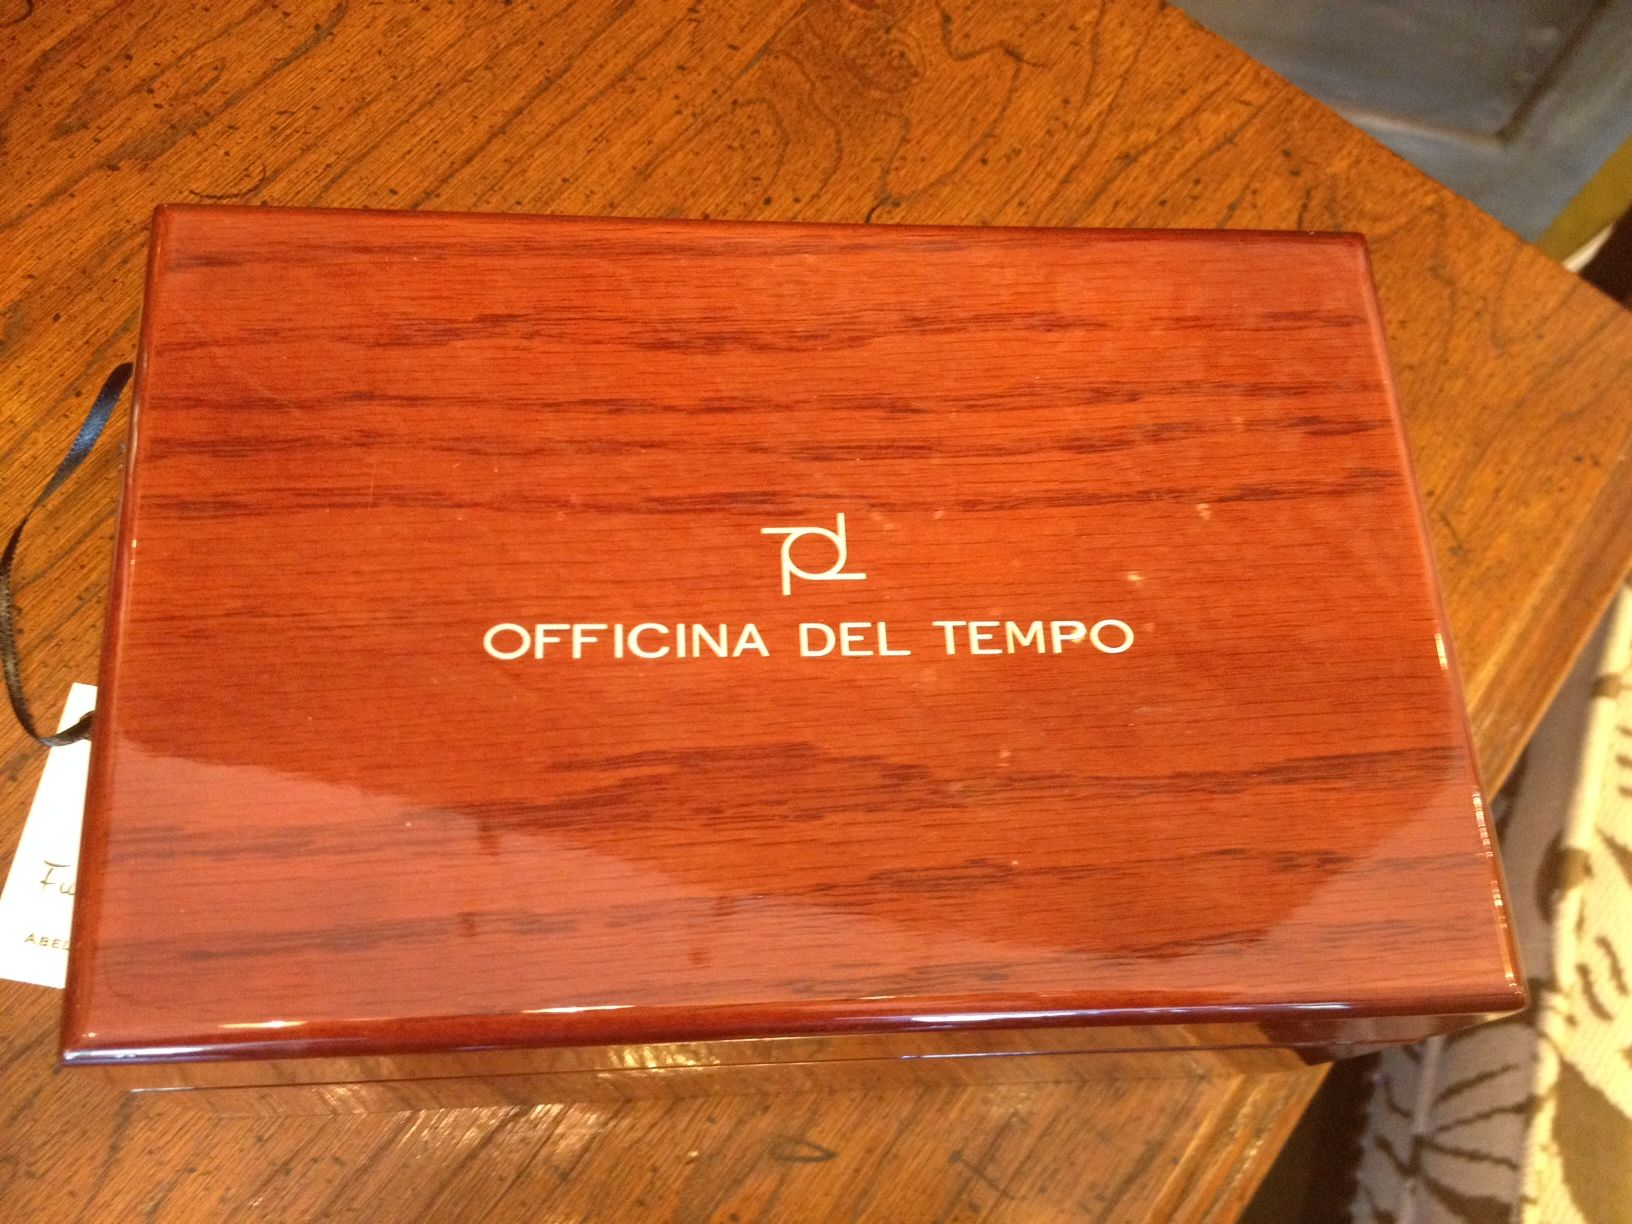 Officina Del Tempo Watch Box.  For sales inquiries, please email abelcathy@aol.com  www.cathyabelomalleyinteriors.com